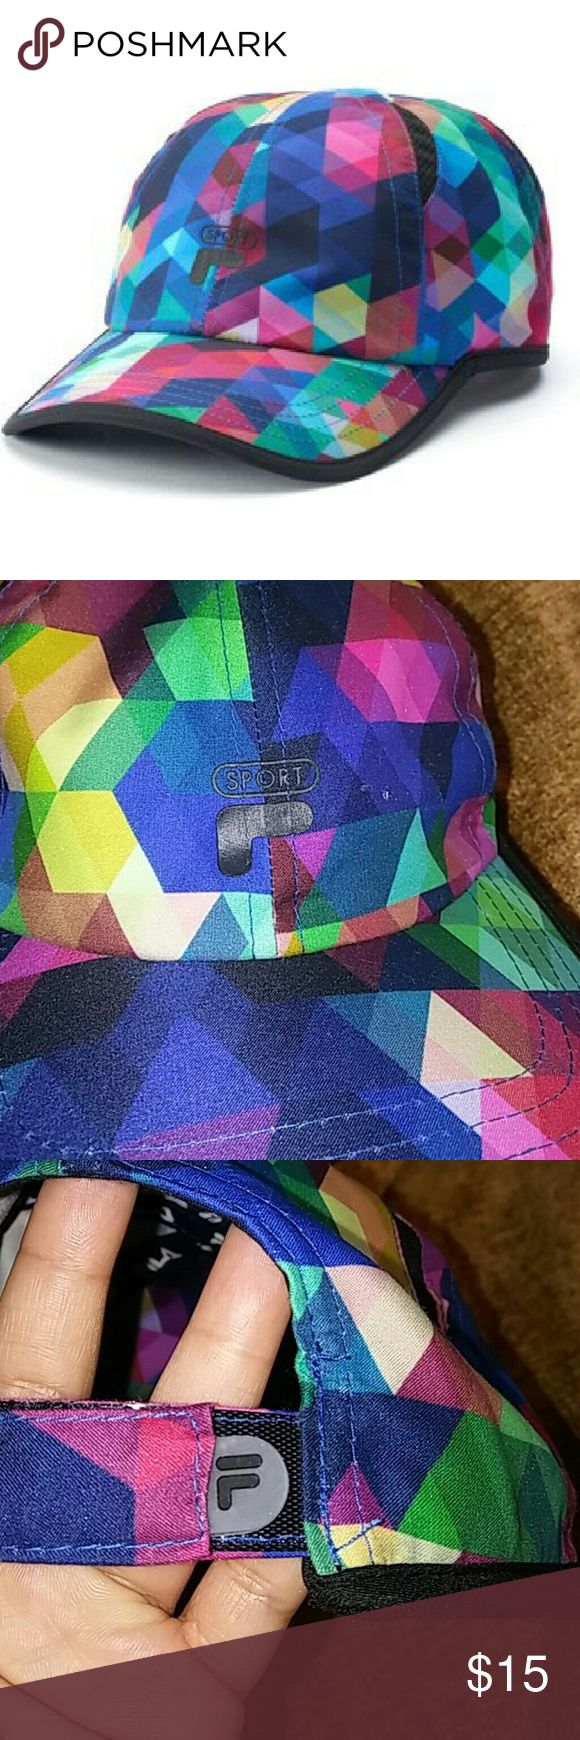 SALE FILA Hat Sport FILA hat. Multicolored geometric prism design. Snapback adjustable. Polyester. Fresh and light. One size. Perfect for outdoor workouts. NWOT Fila Accessories Hats